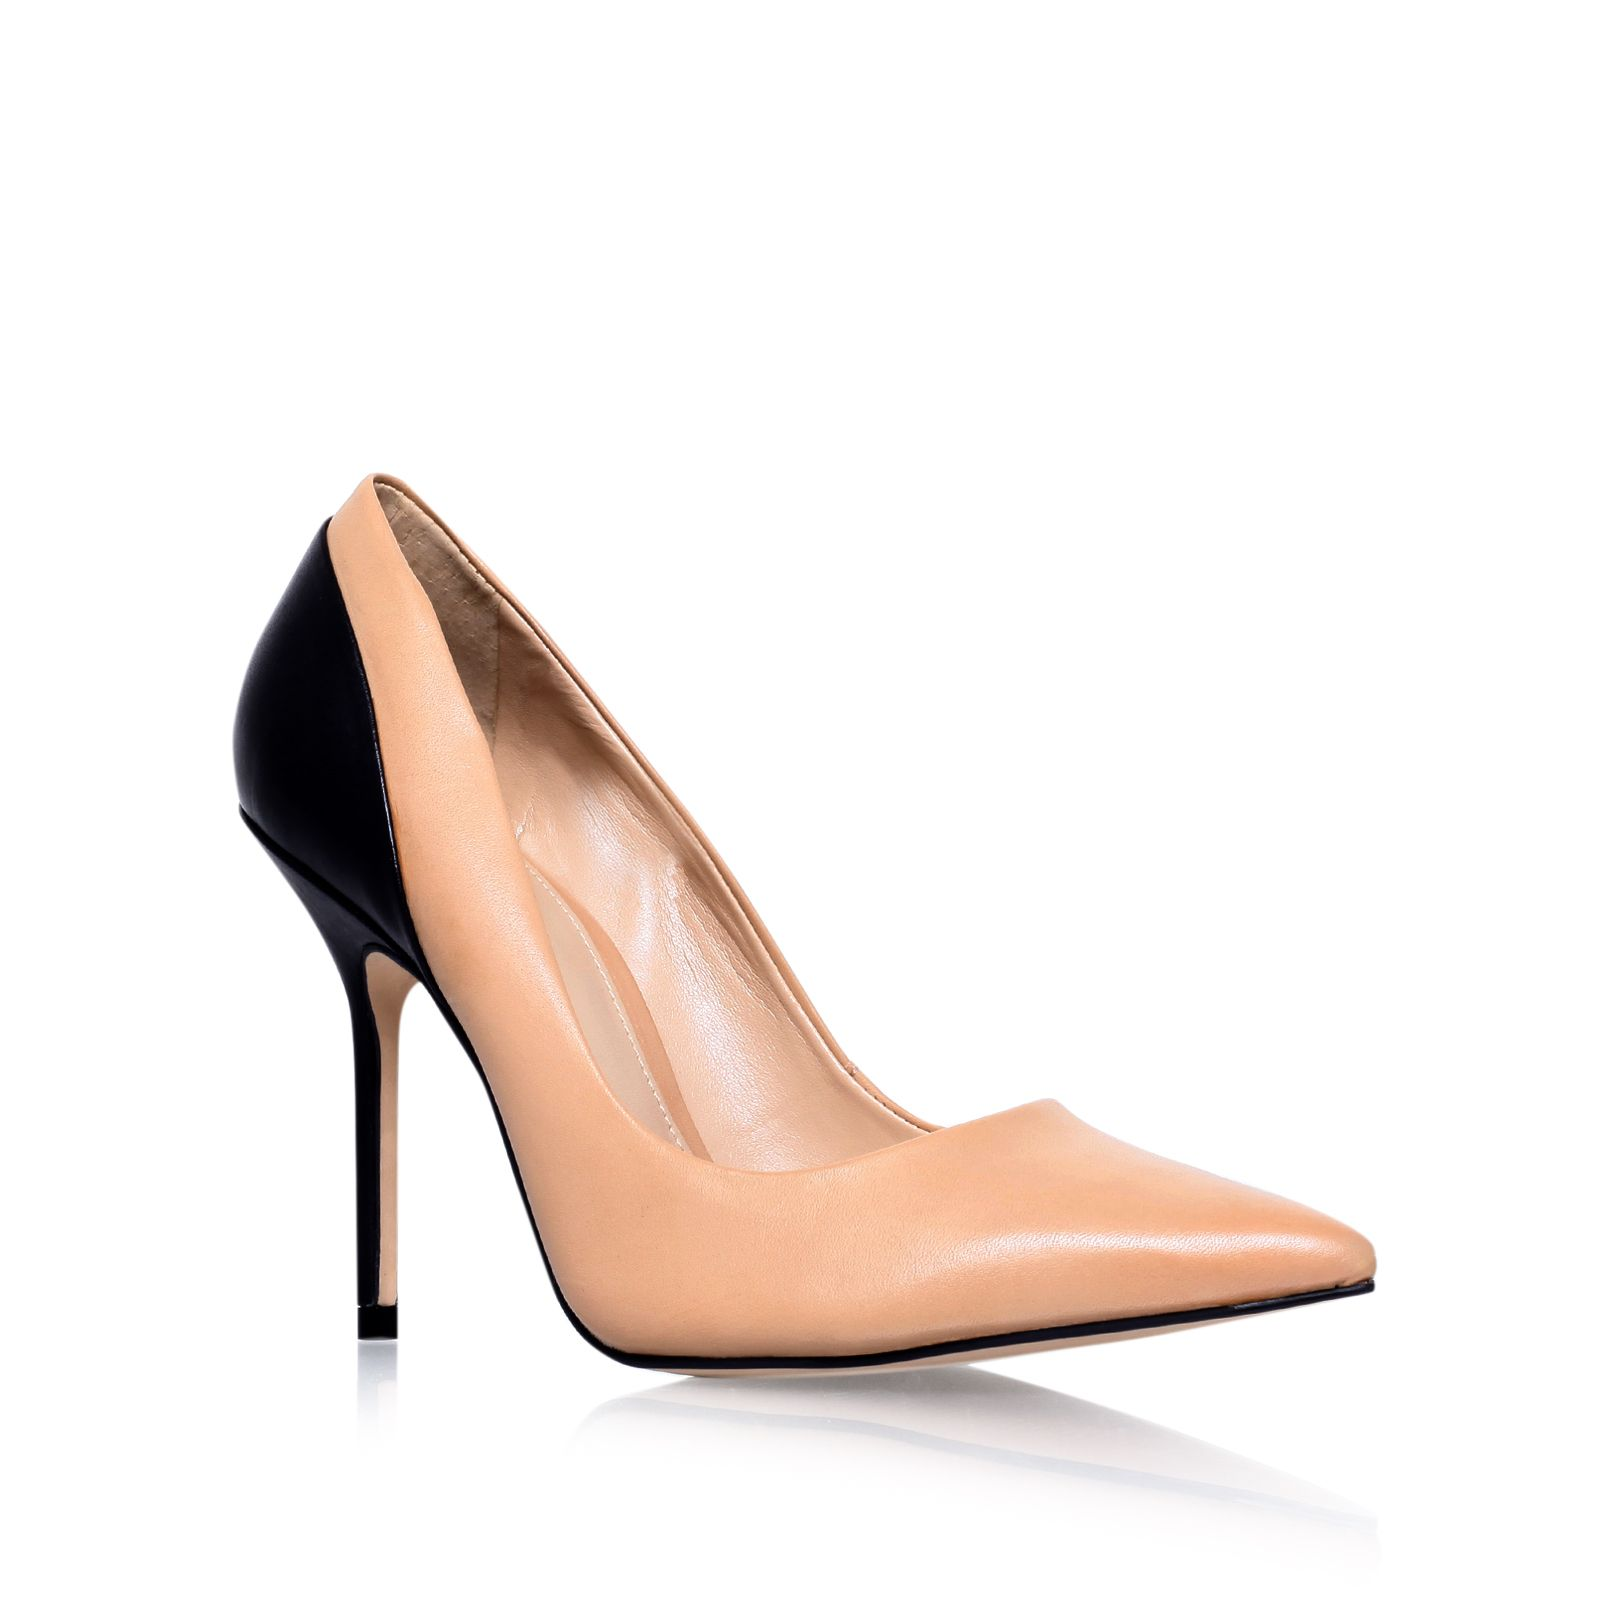 Ghecko high heel court shoes